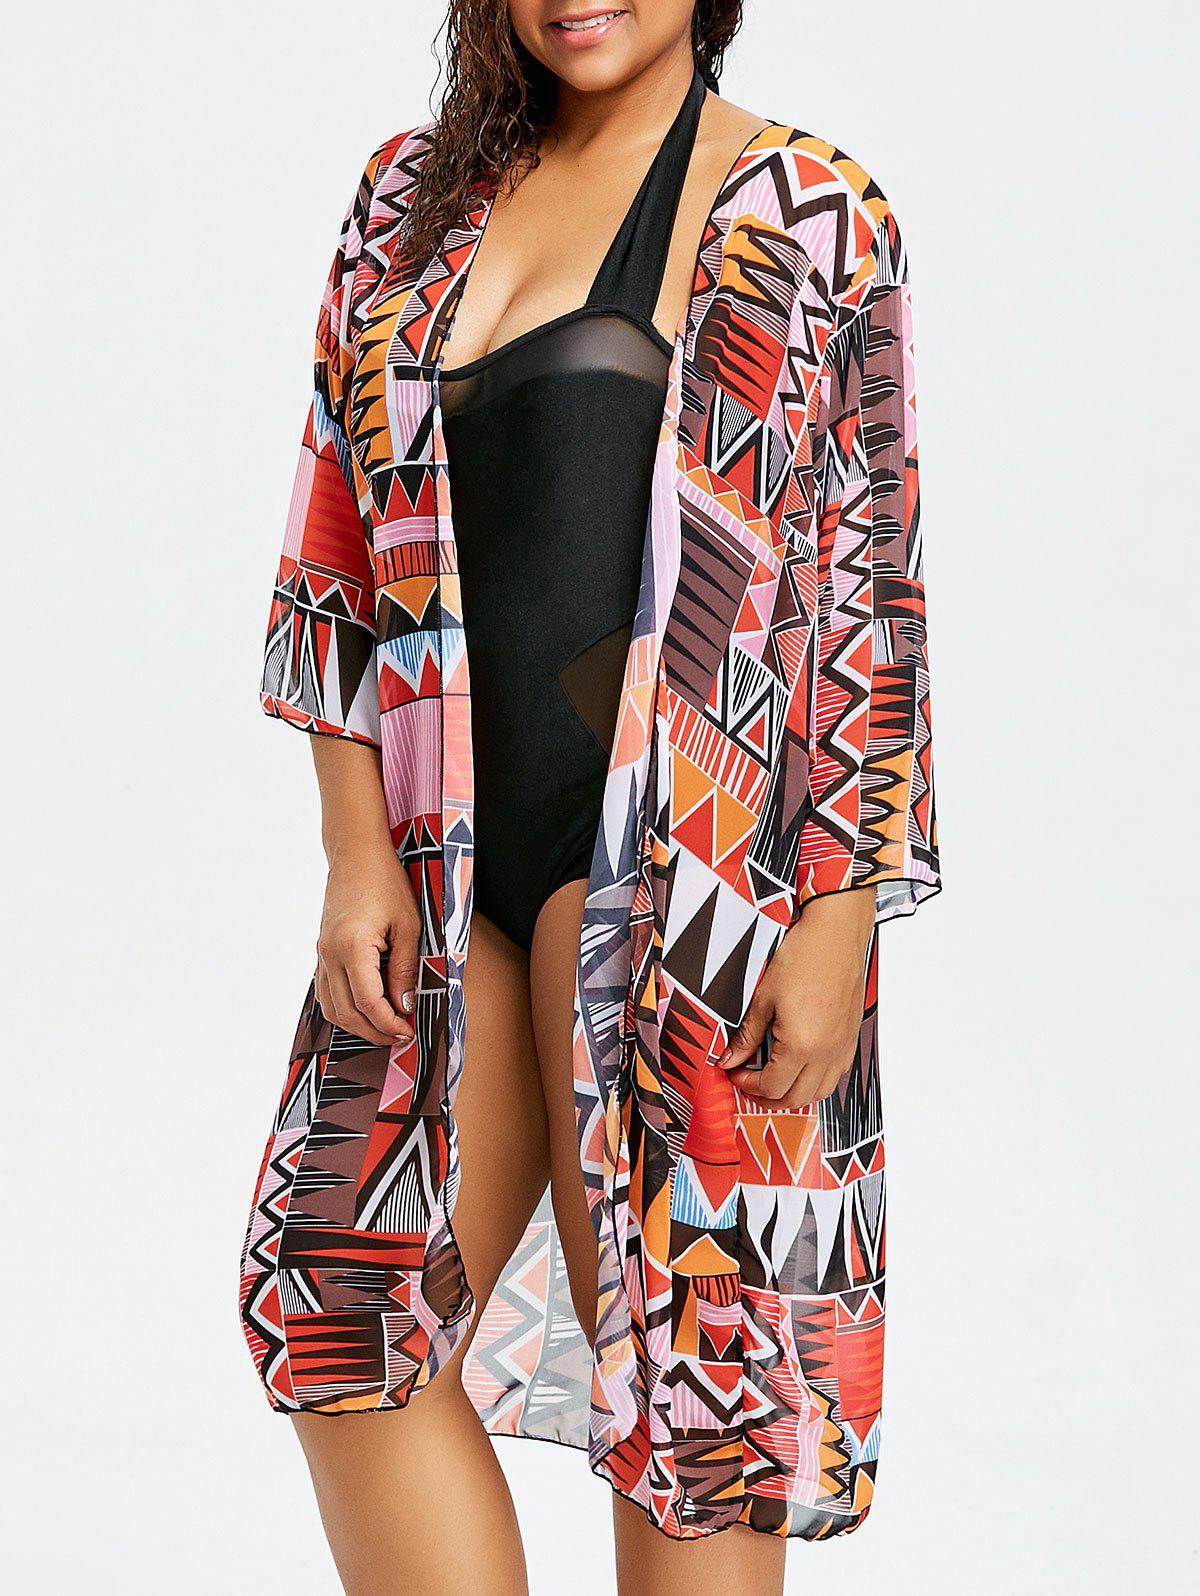 New Tribal Long Plus Size Swimsuit Cover Up Kimono